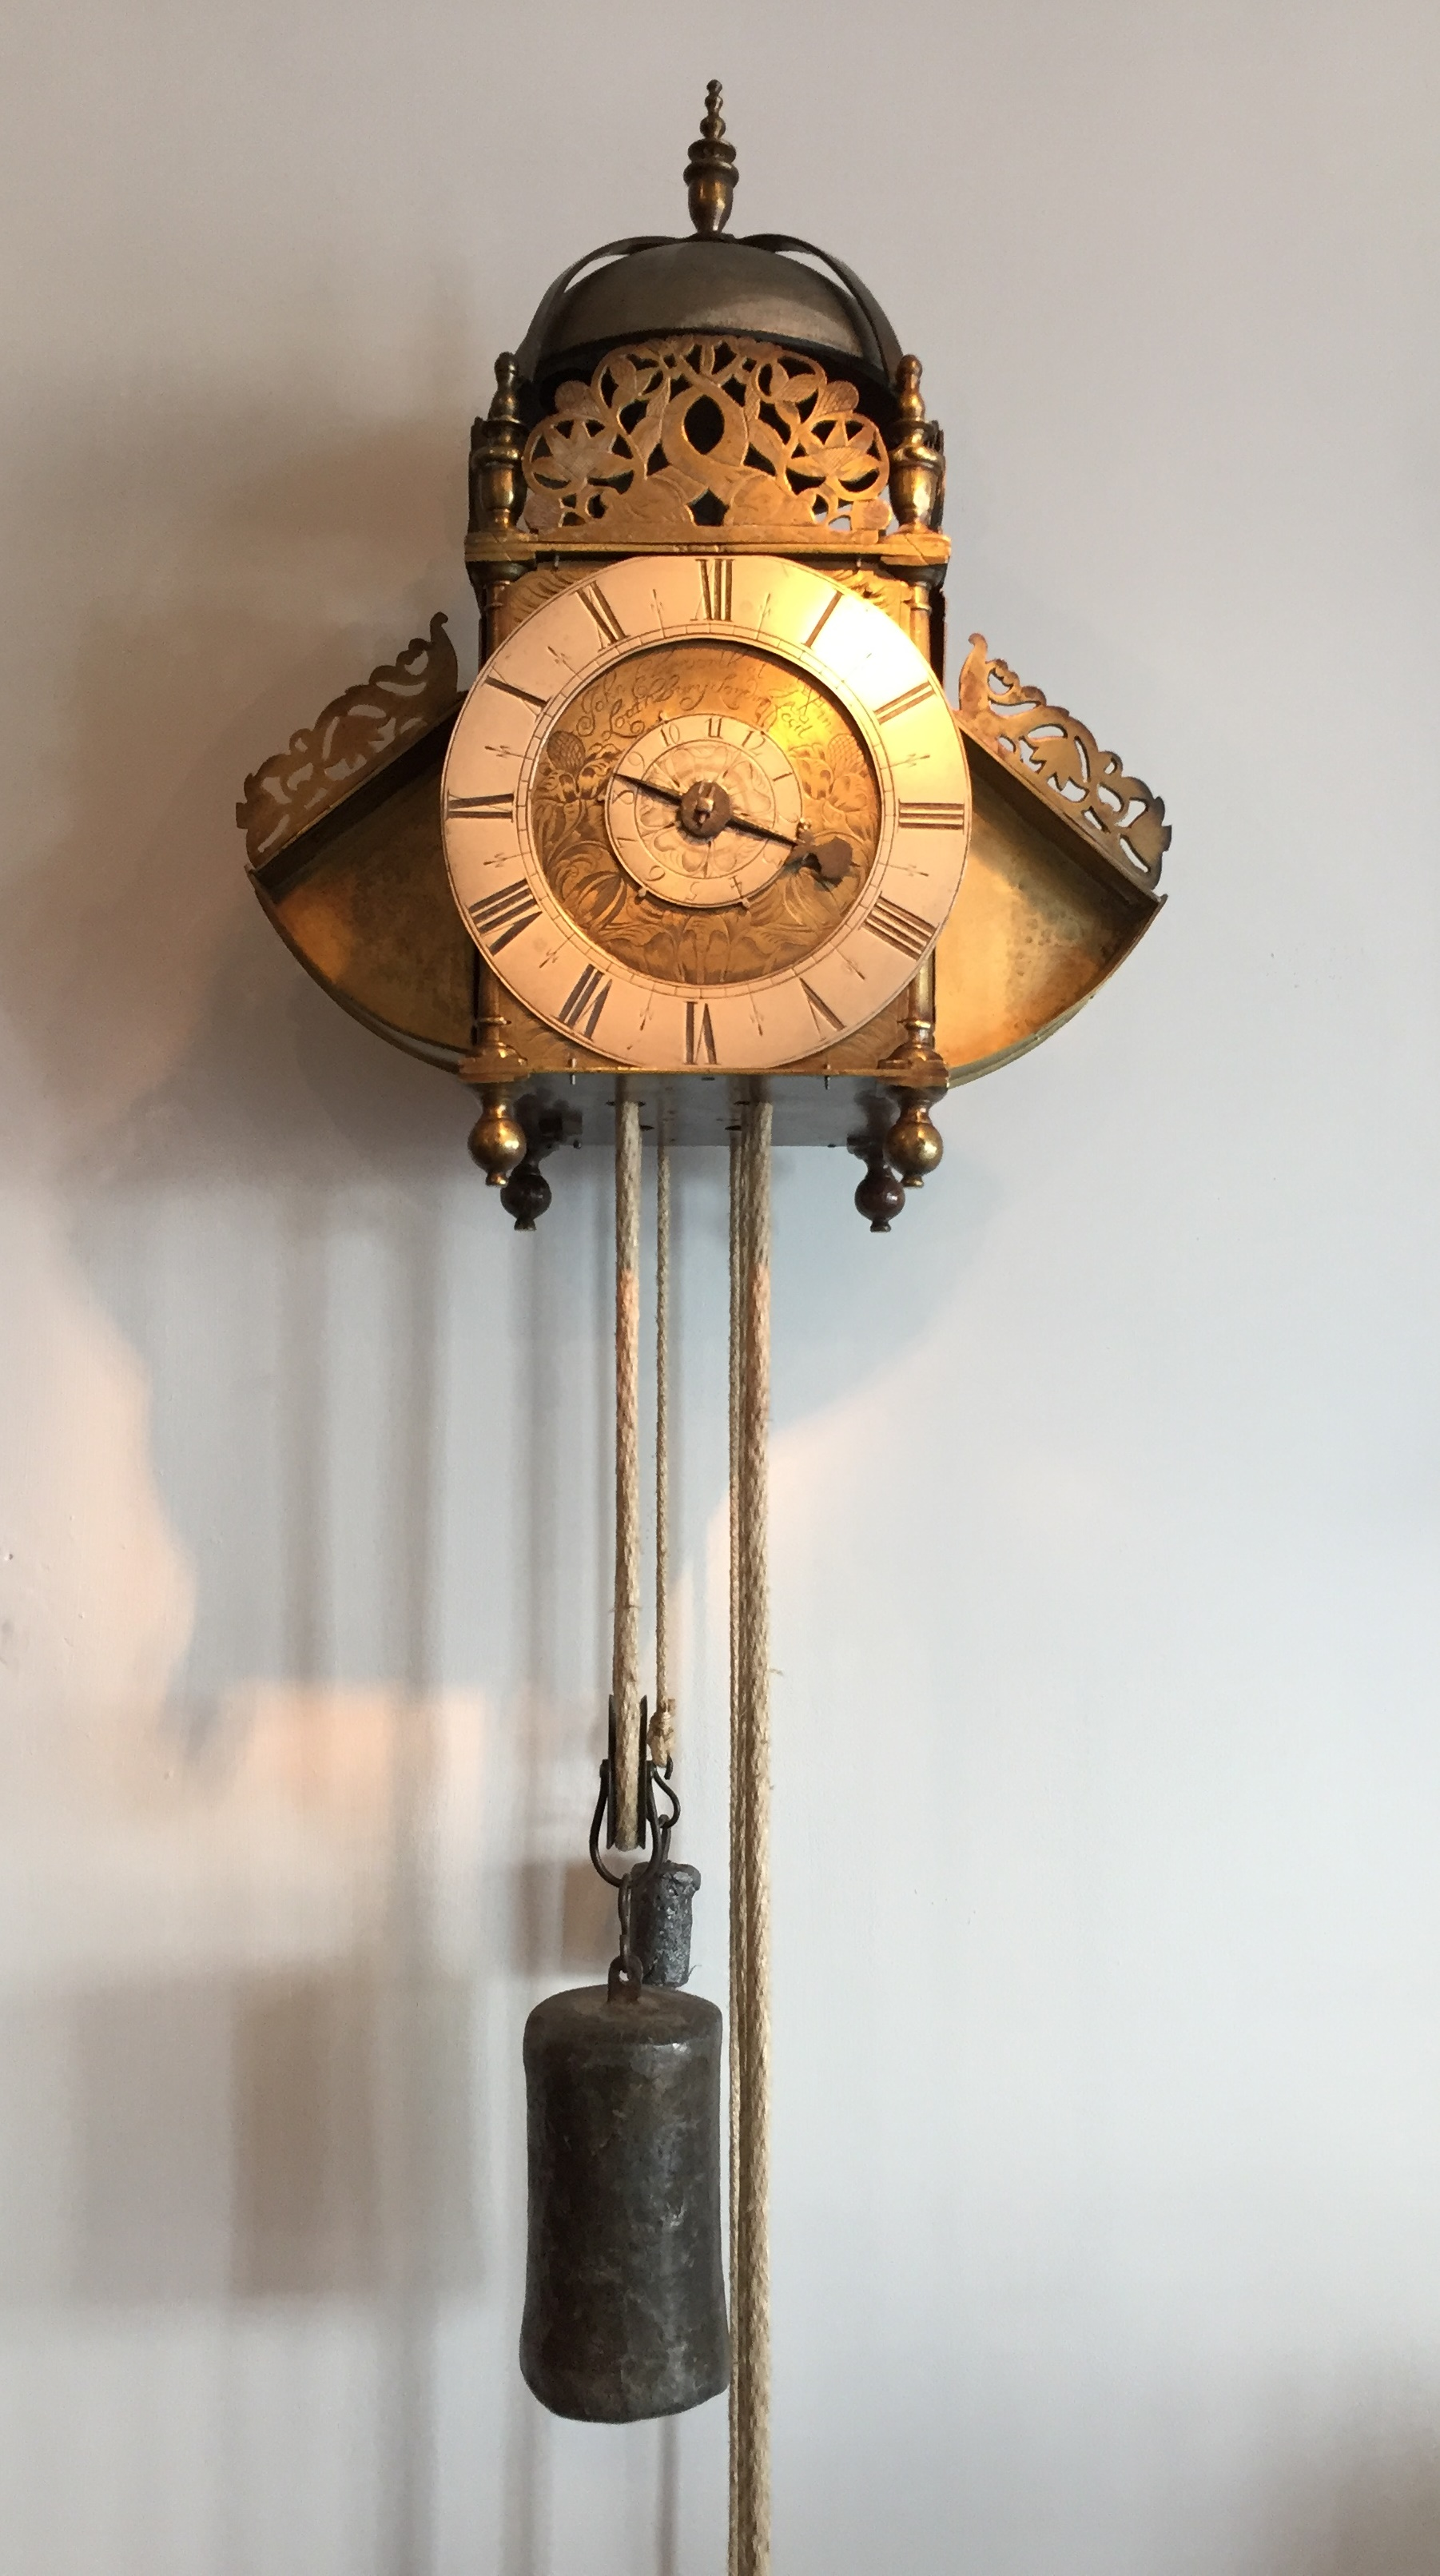 A verge, winged lantern clock signed by John Ebsworth 'Lothbury Londini', circa 1685. Raffety ltd